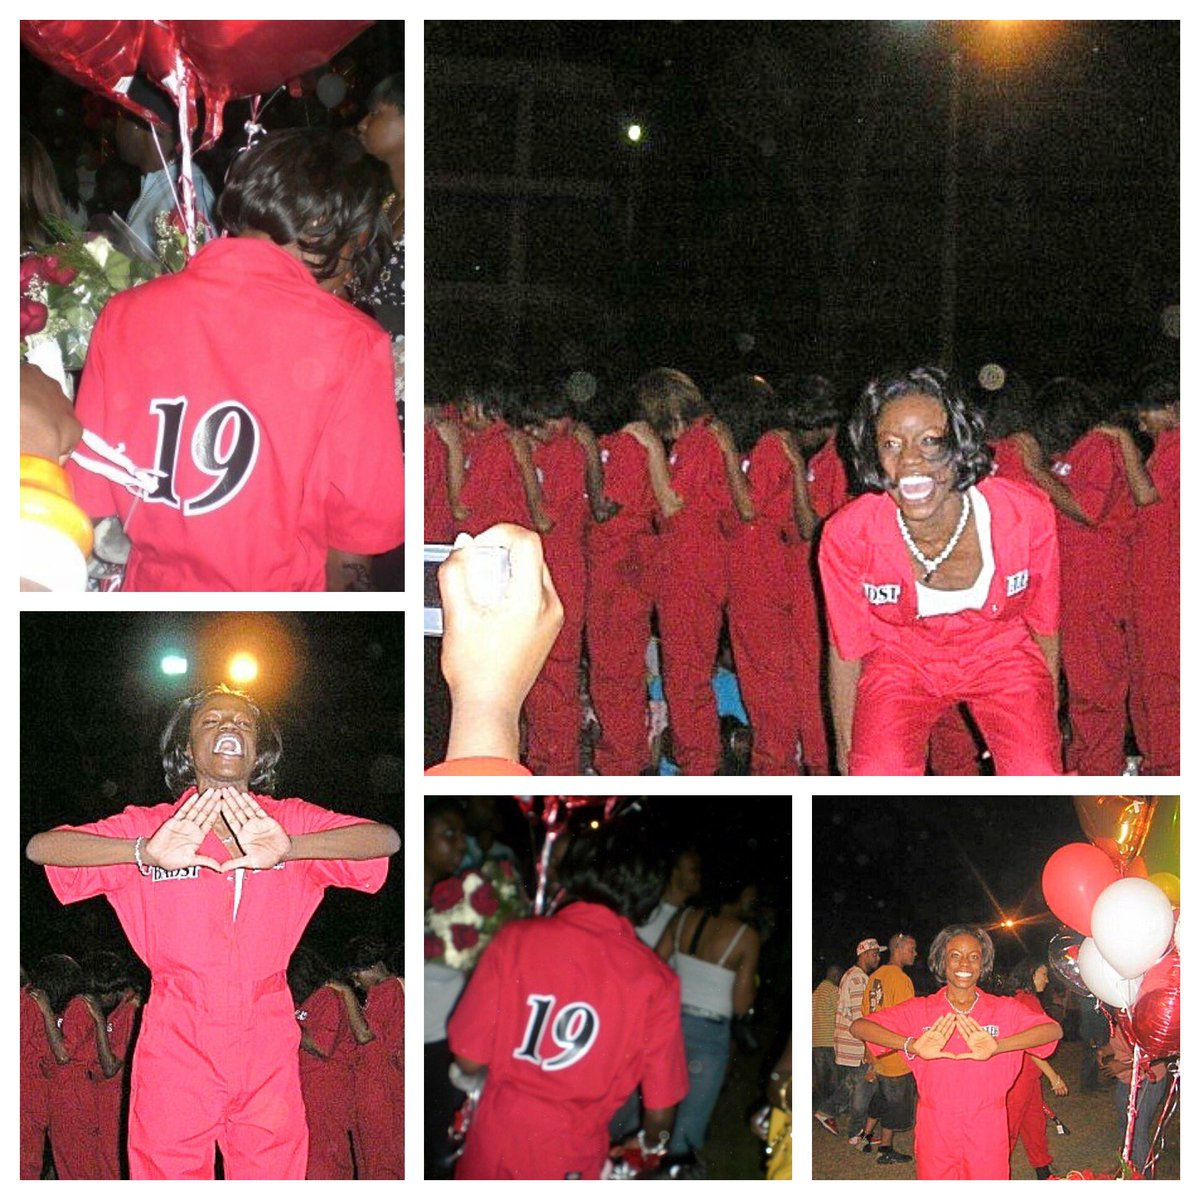 Probate day was weeks later, but felt like I crossed all over again #TITEisnine #BADST #NineAndFine #FAMU_RYS16 https://t.co/aUe7LCV1Pr